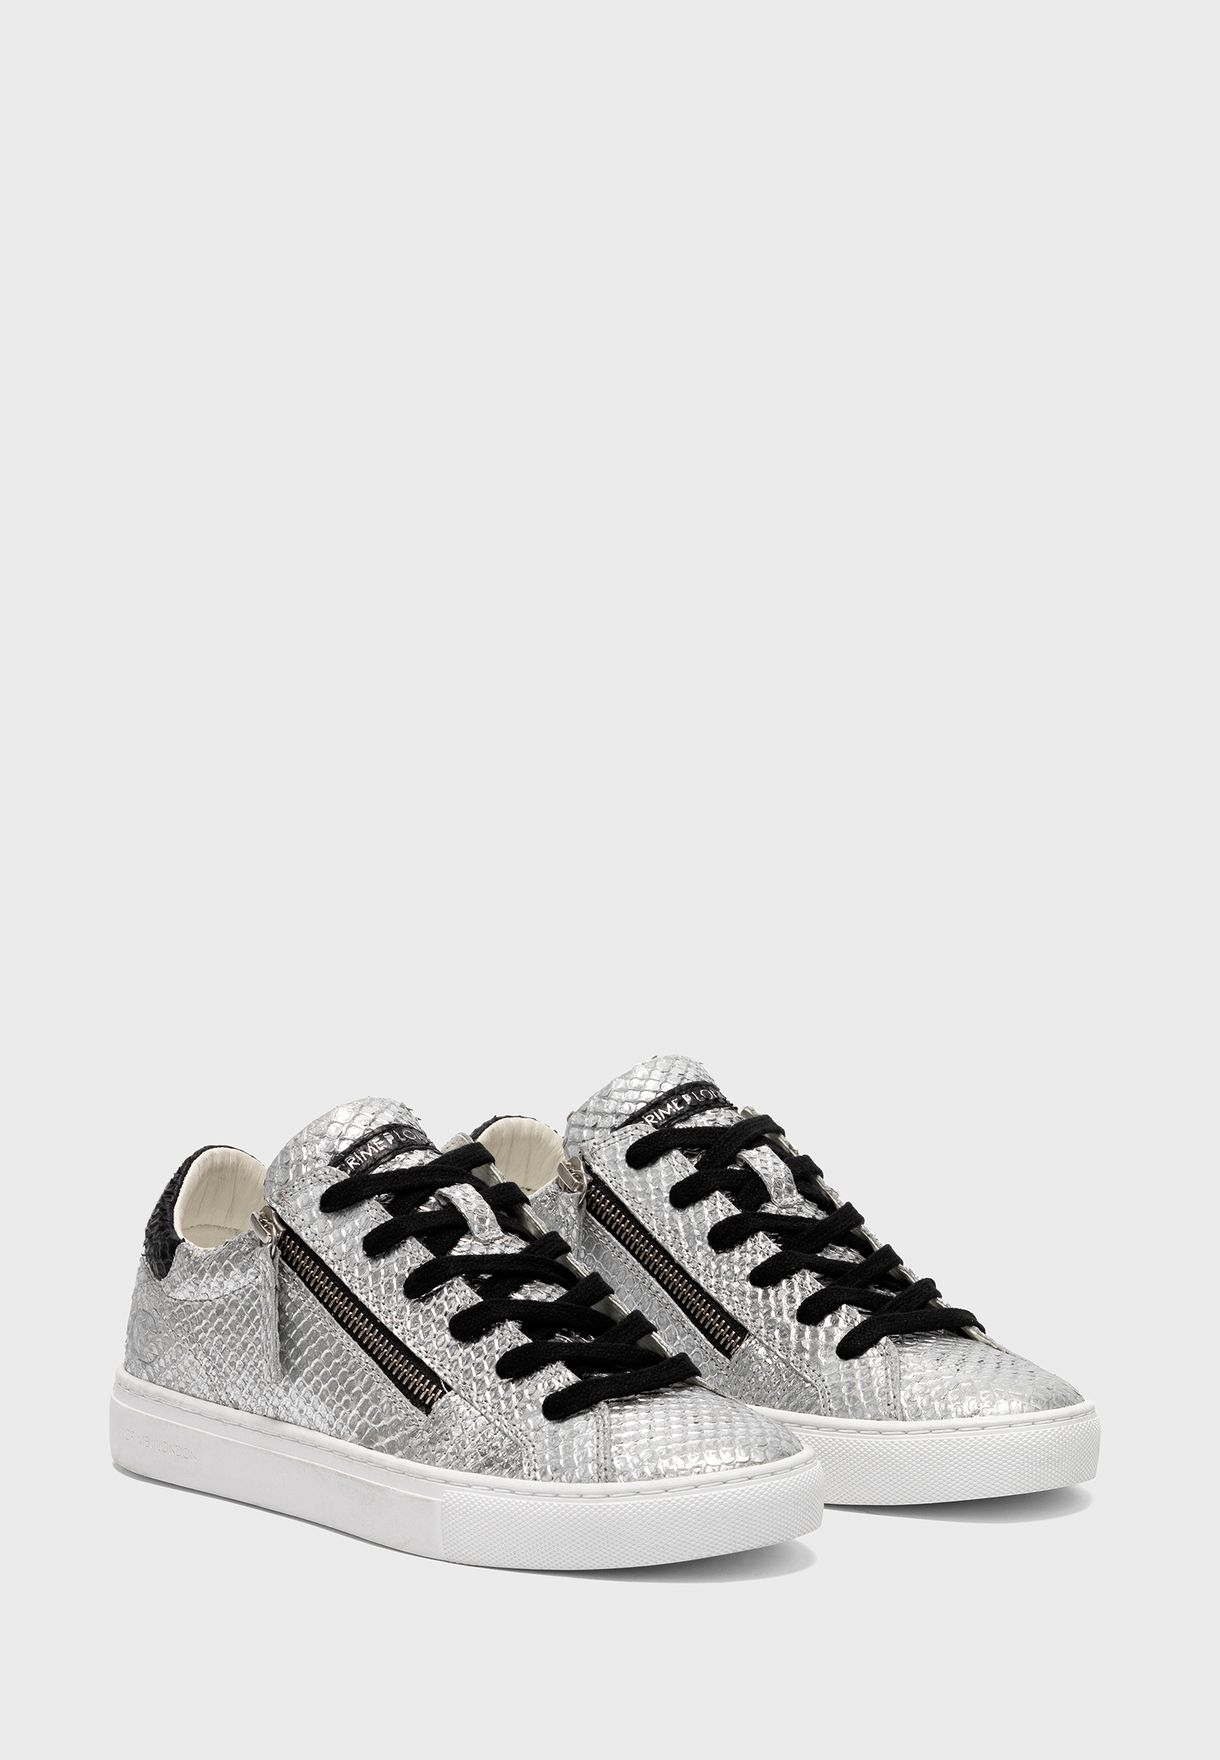 Double Zip Low Top Sneaker